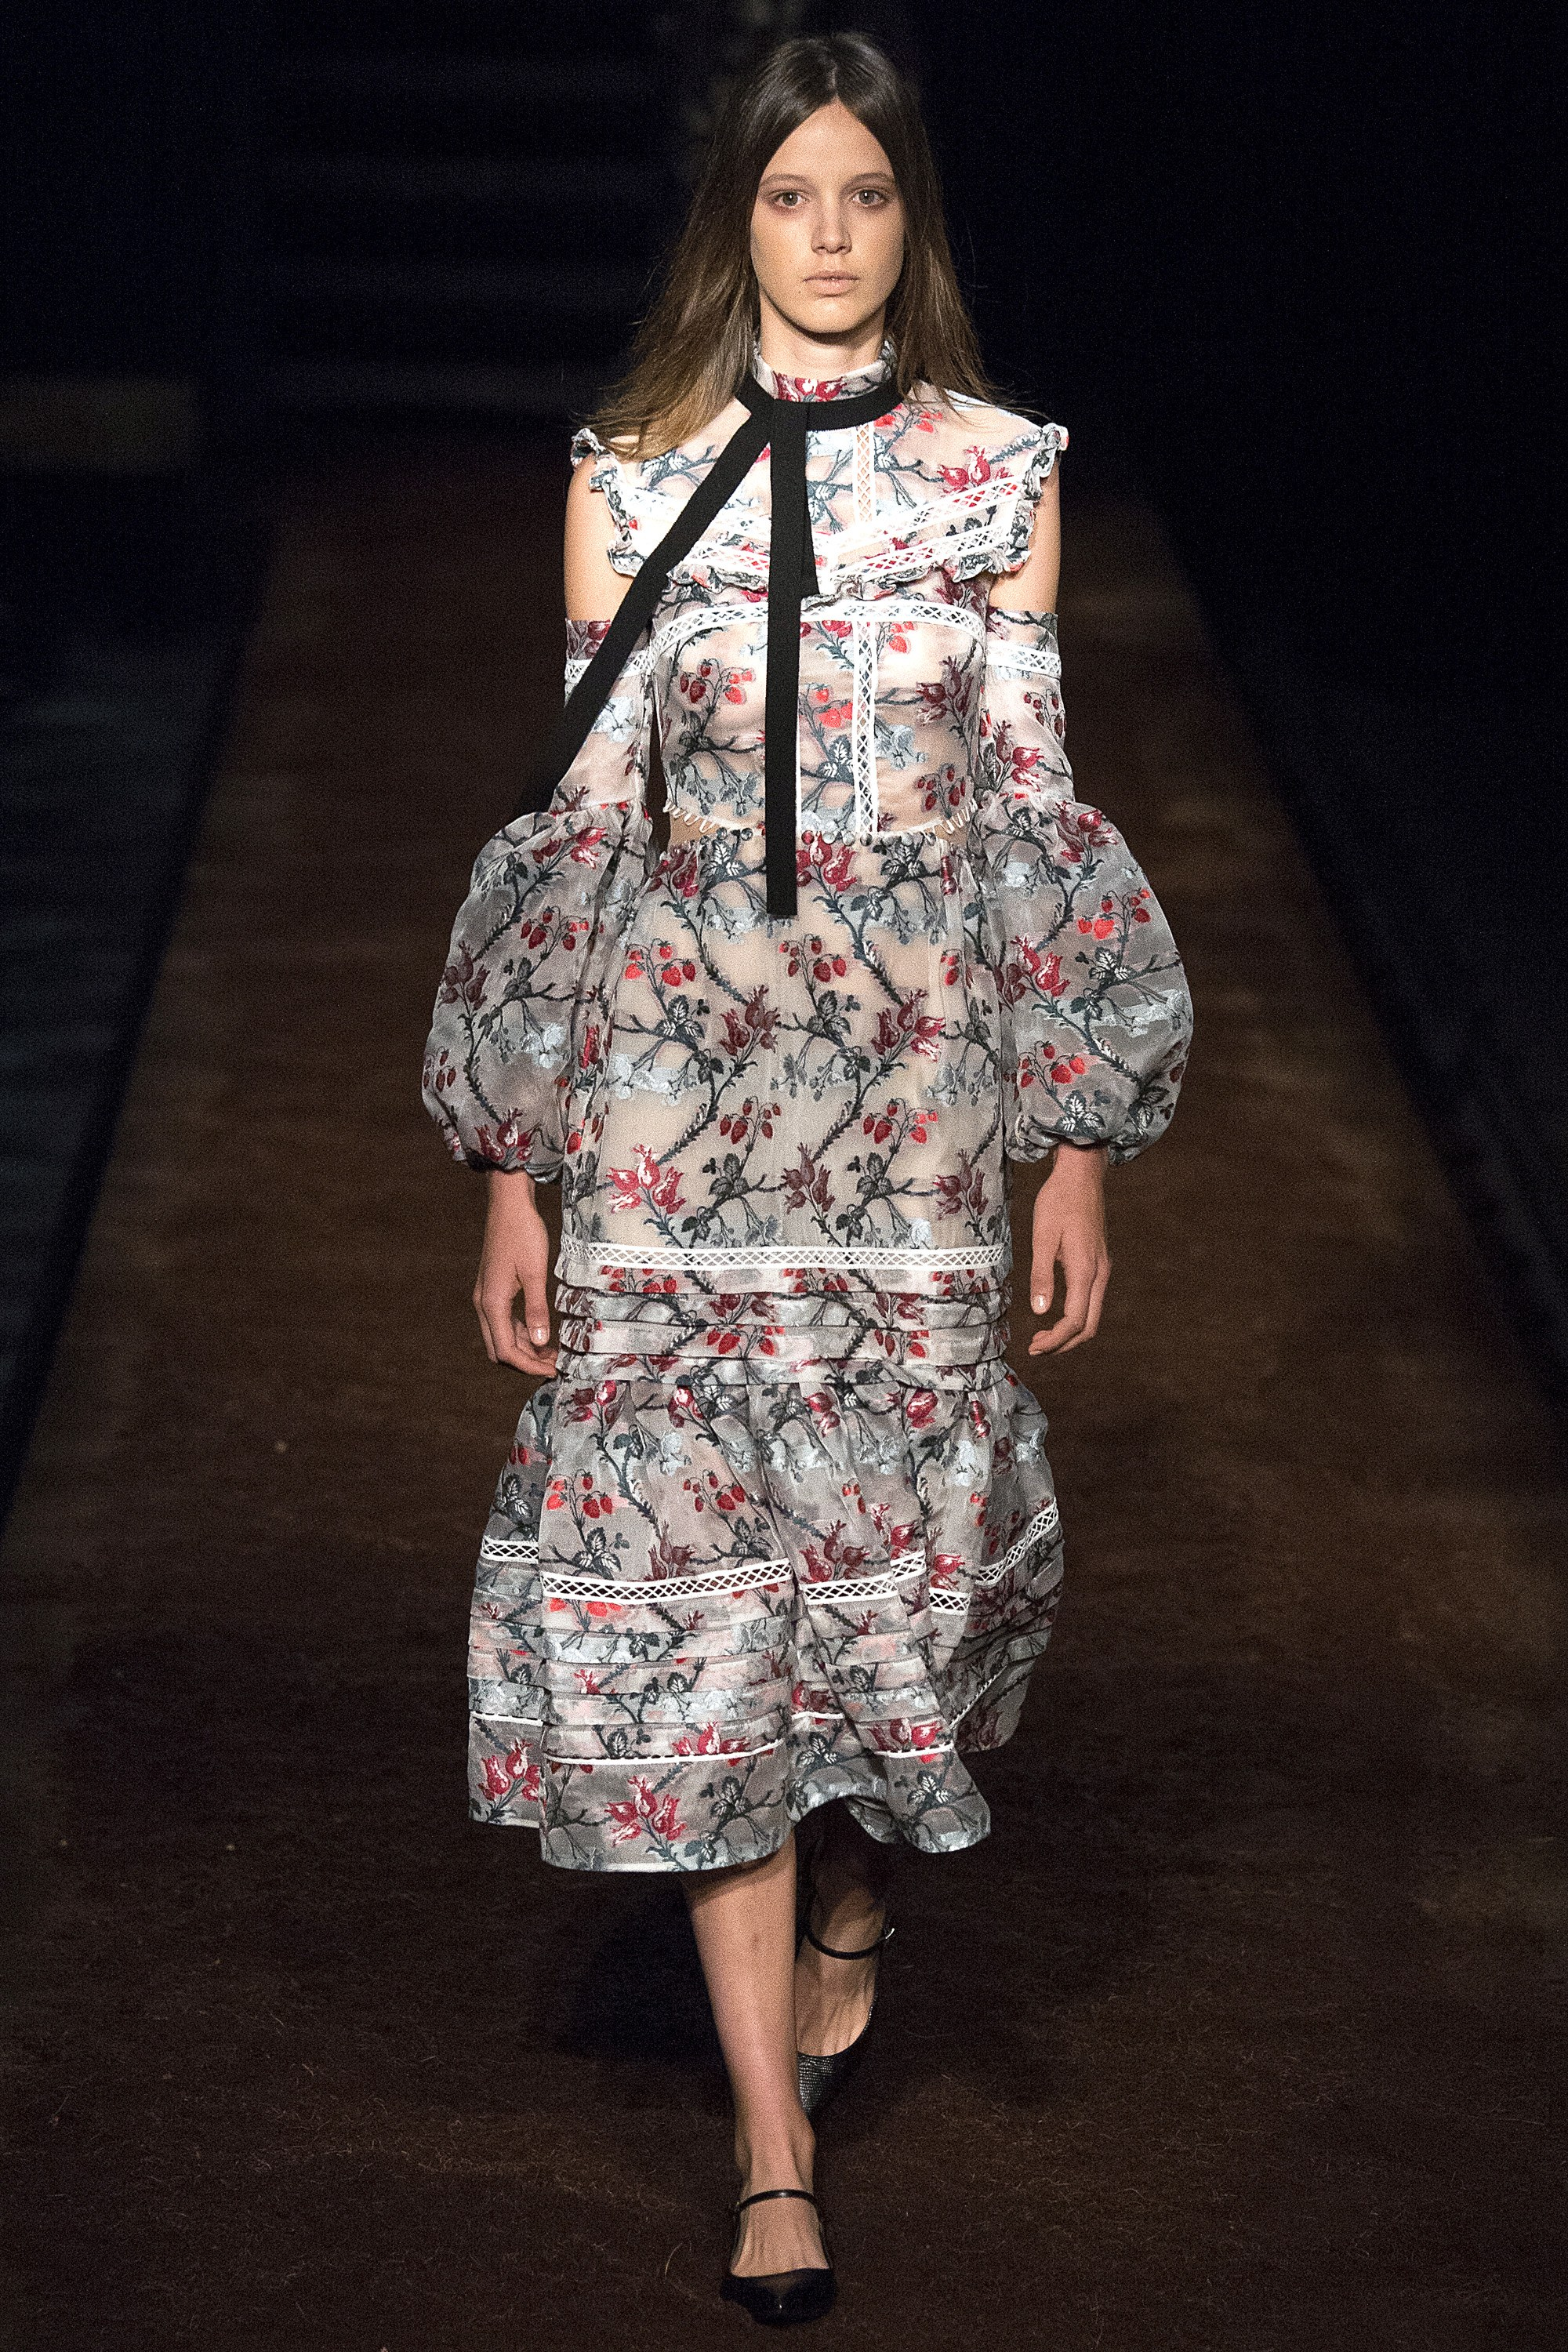 Mesmerizing Erdem Dress Idea | Sophisticated Erdem London